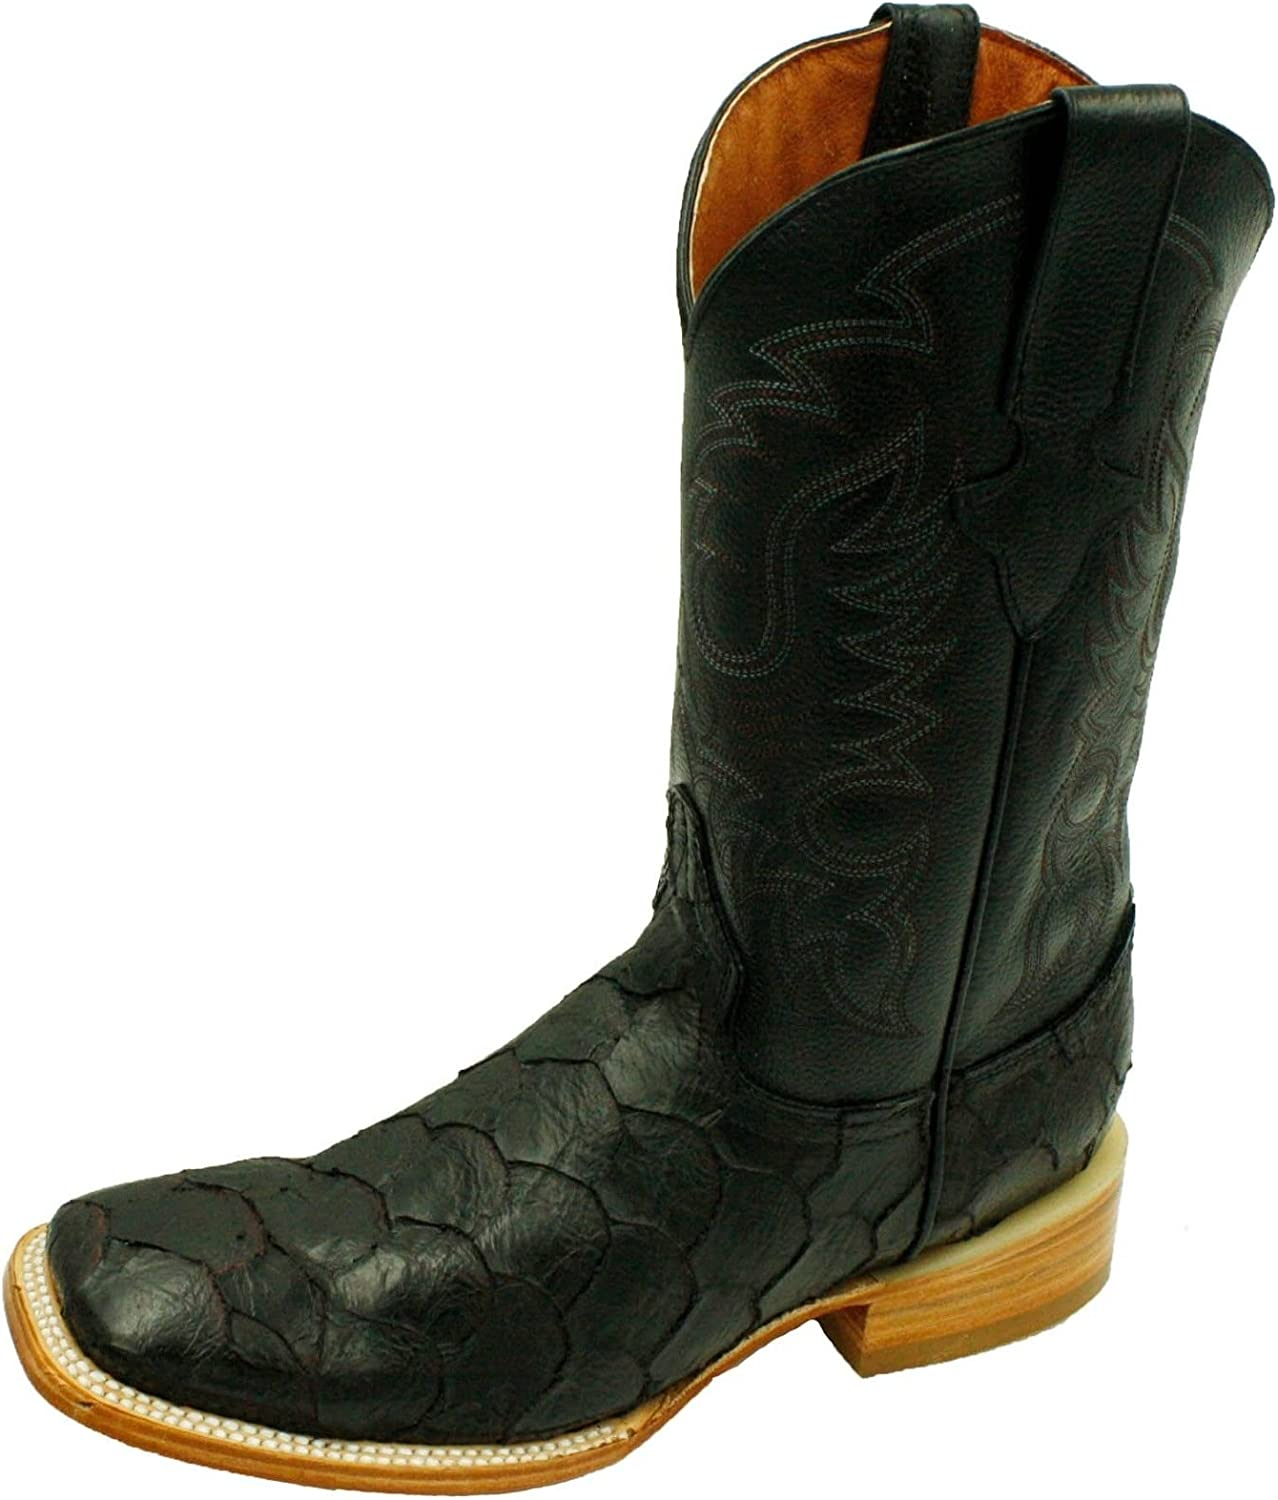 Tampa Mall Men Genuine Cash special price Cowhide Leather Fish Toe Western Square Boots Print